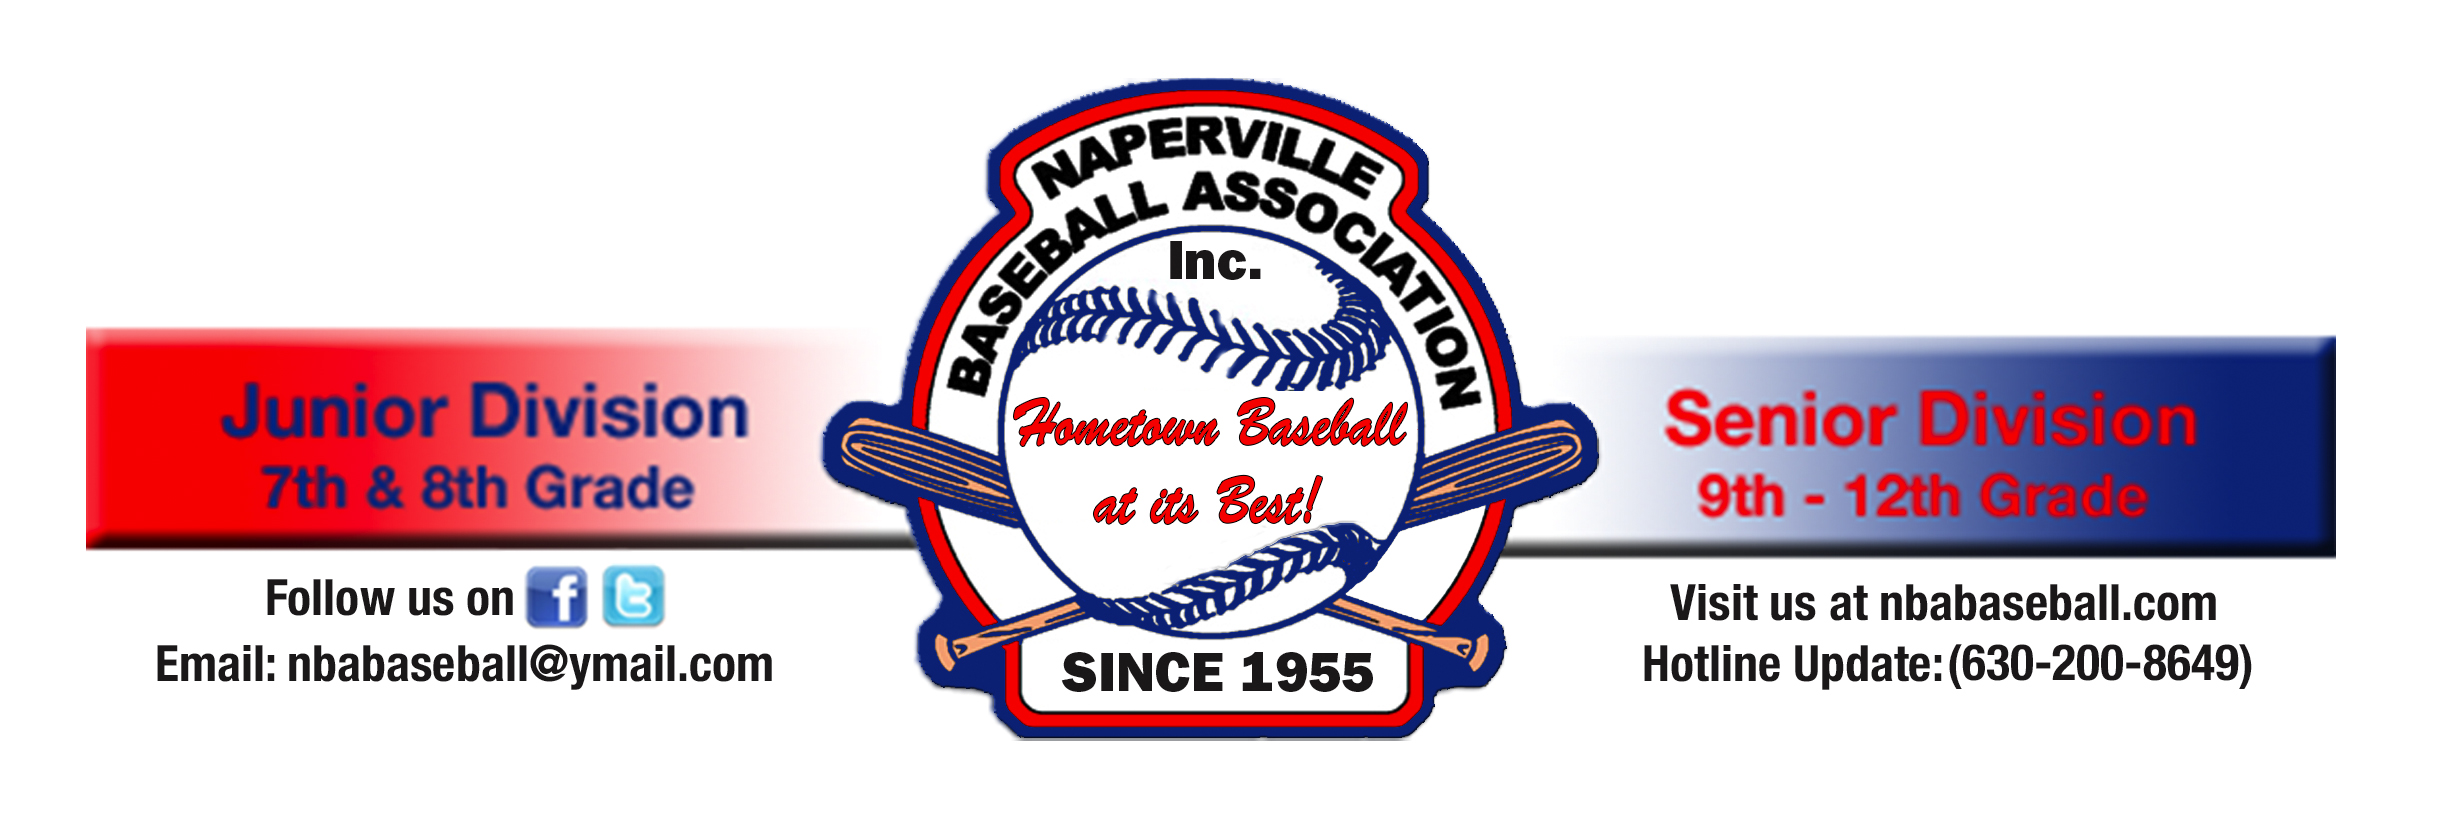 Naperville Baseball Association